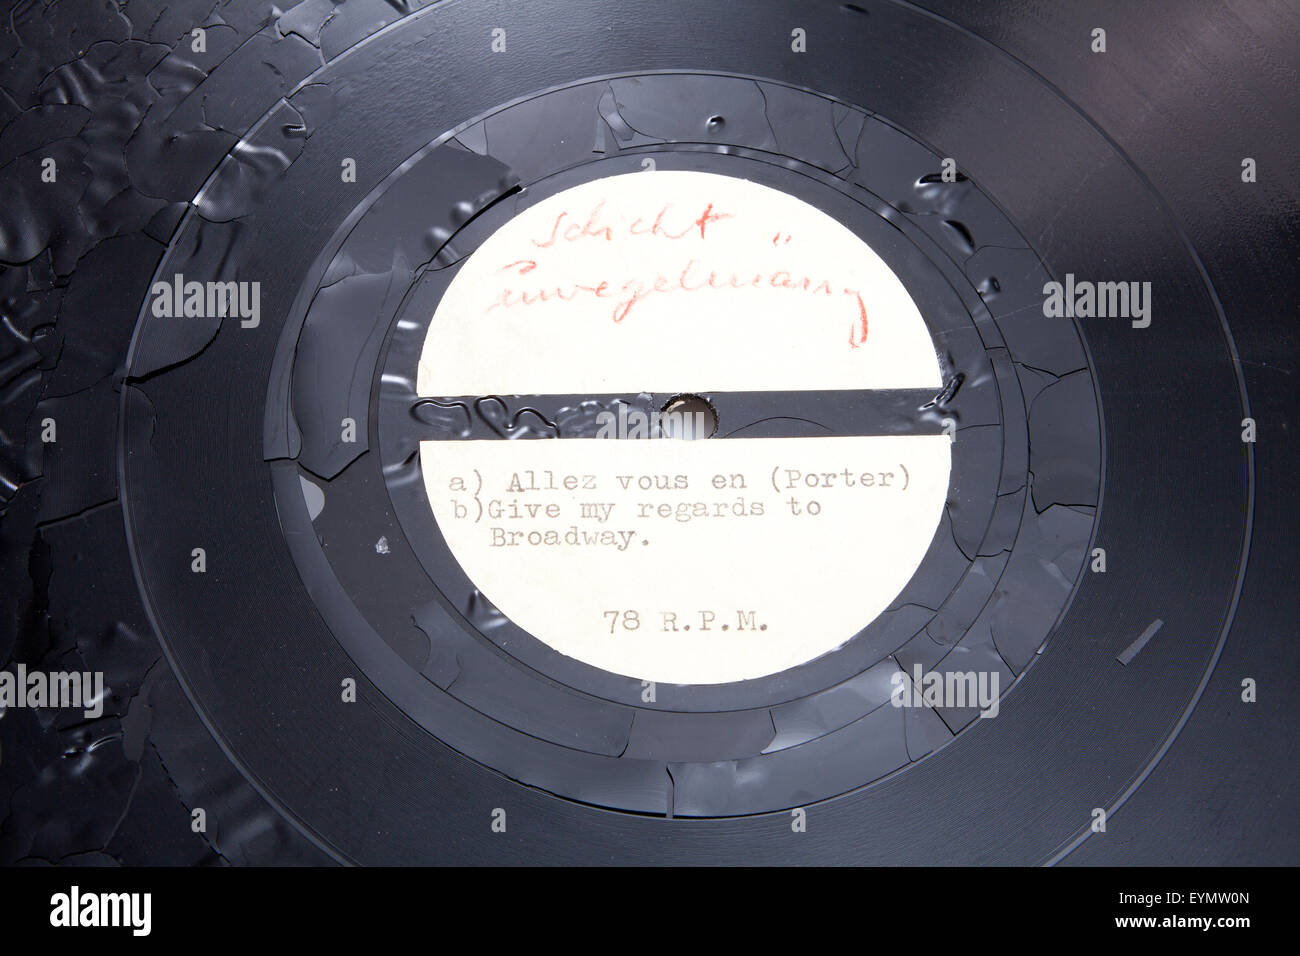 Old shellac record, early sample pressure - Stock Image